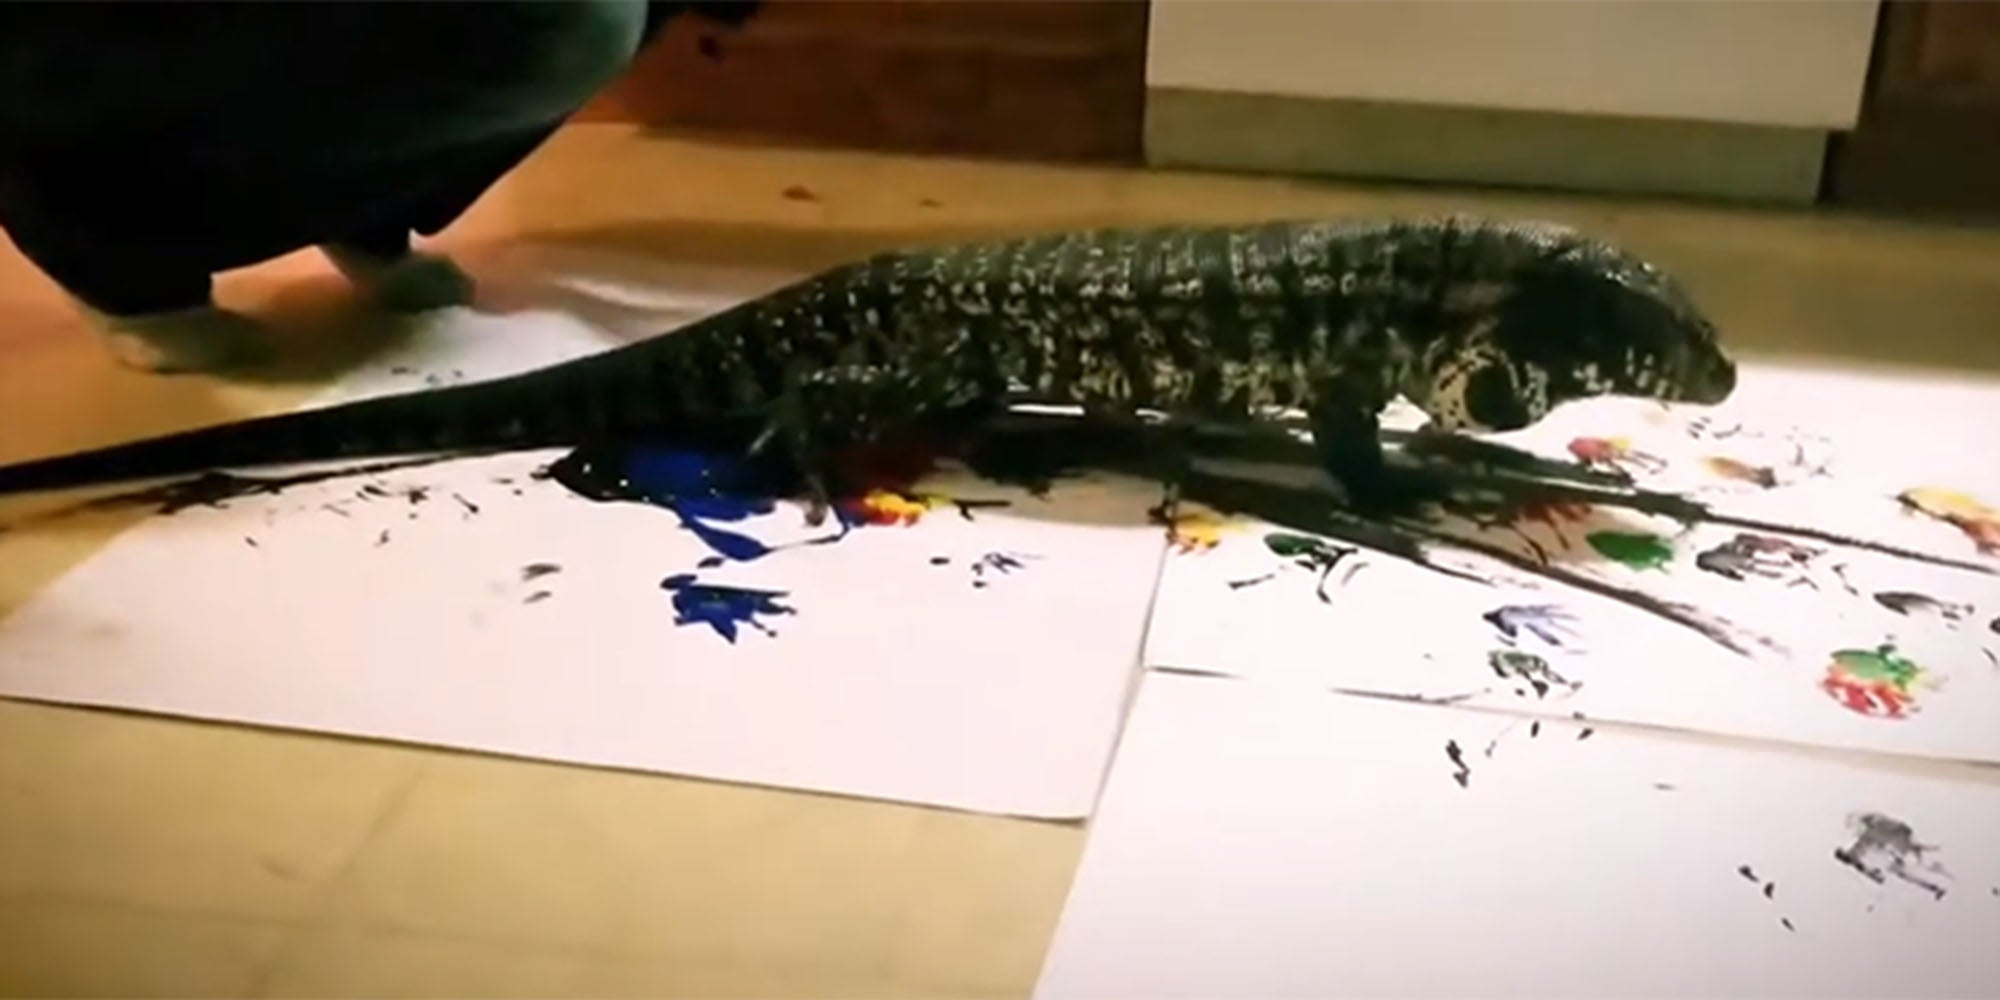 This painting lizard is selling his artwork to raise money for the Australian fire fund